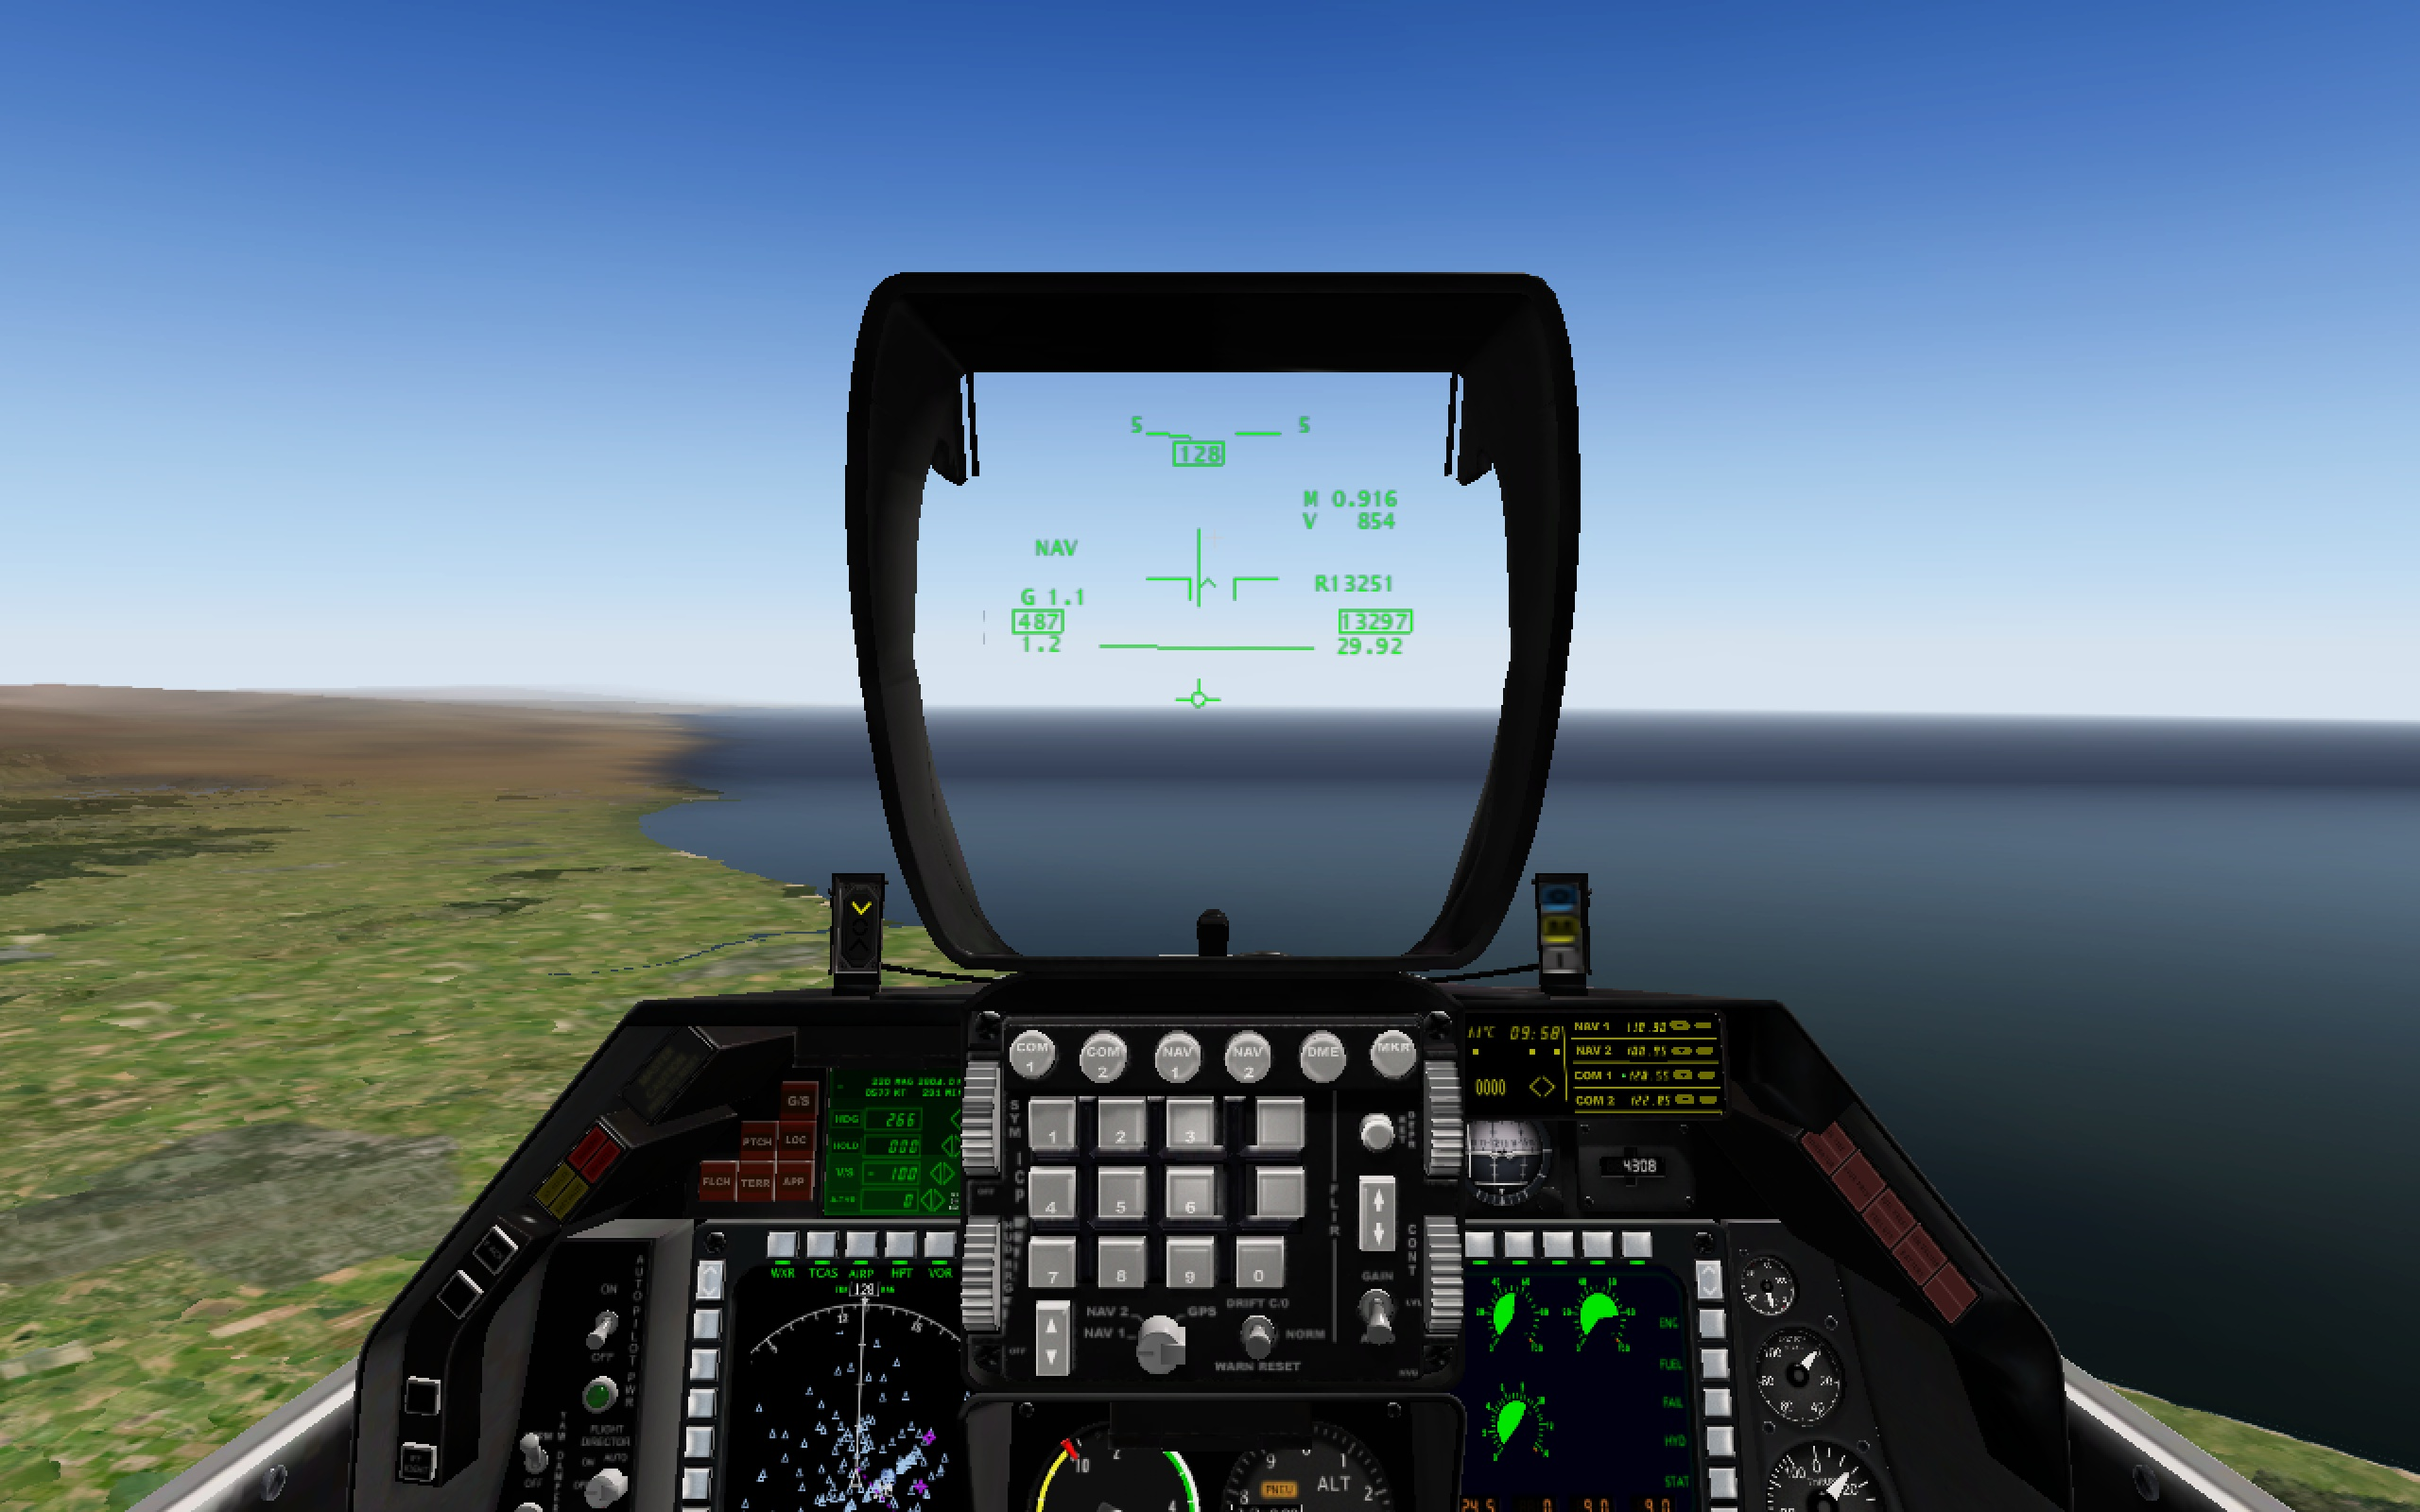 HUD for the JCS F-16 Fighting Falcon for X-Plane 10 flight simulator.